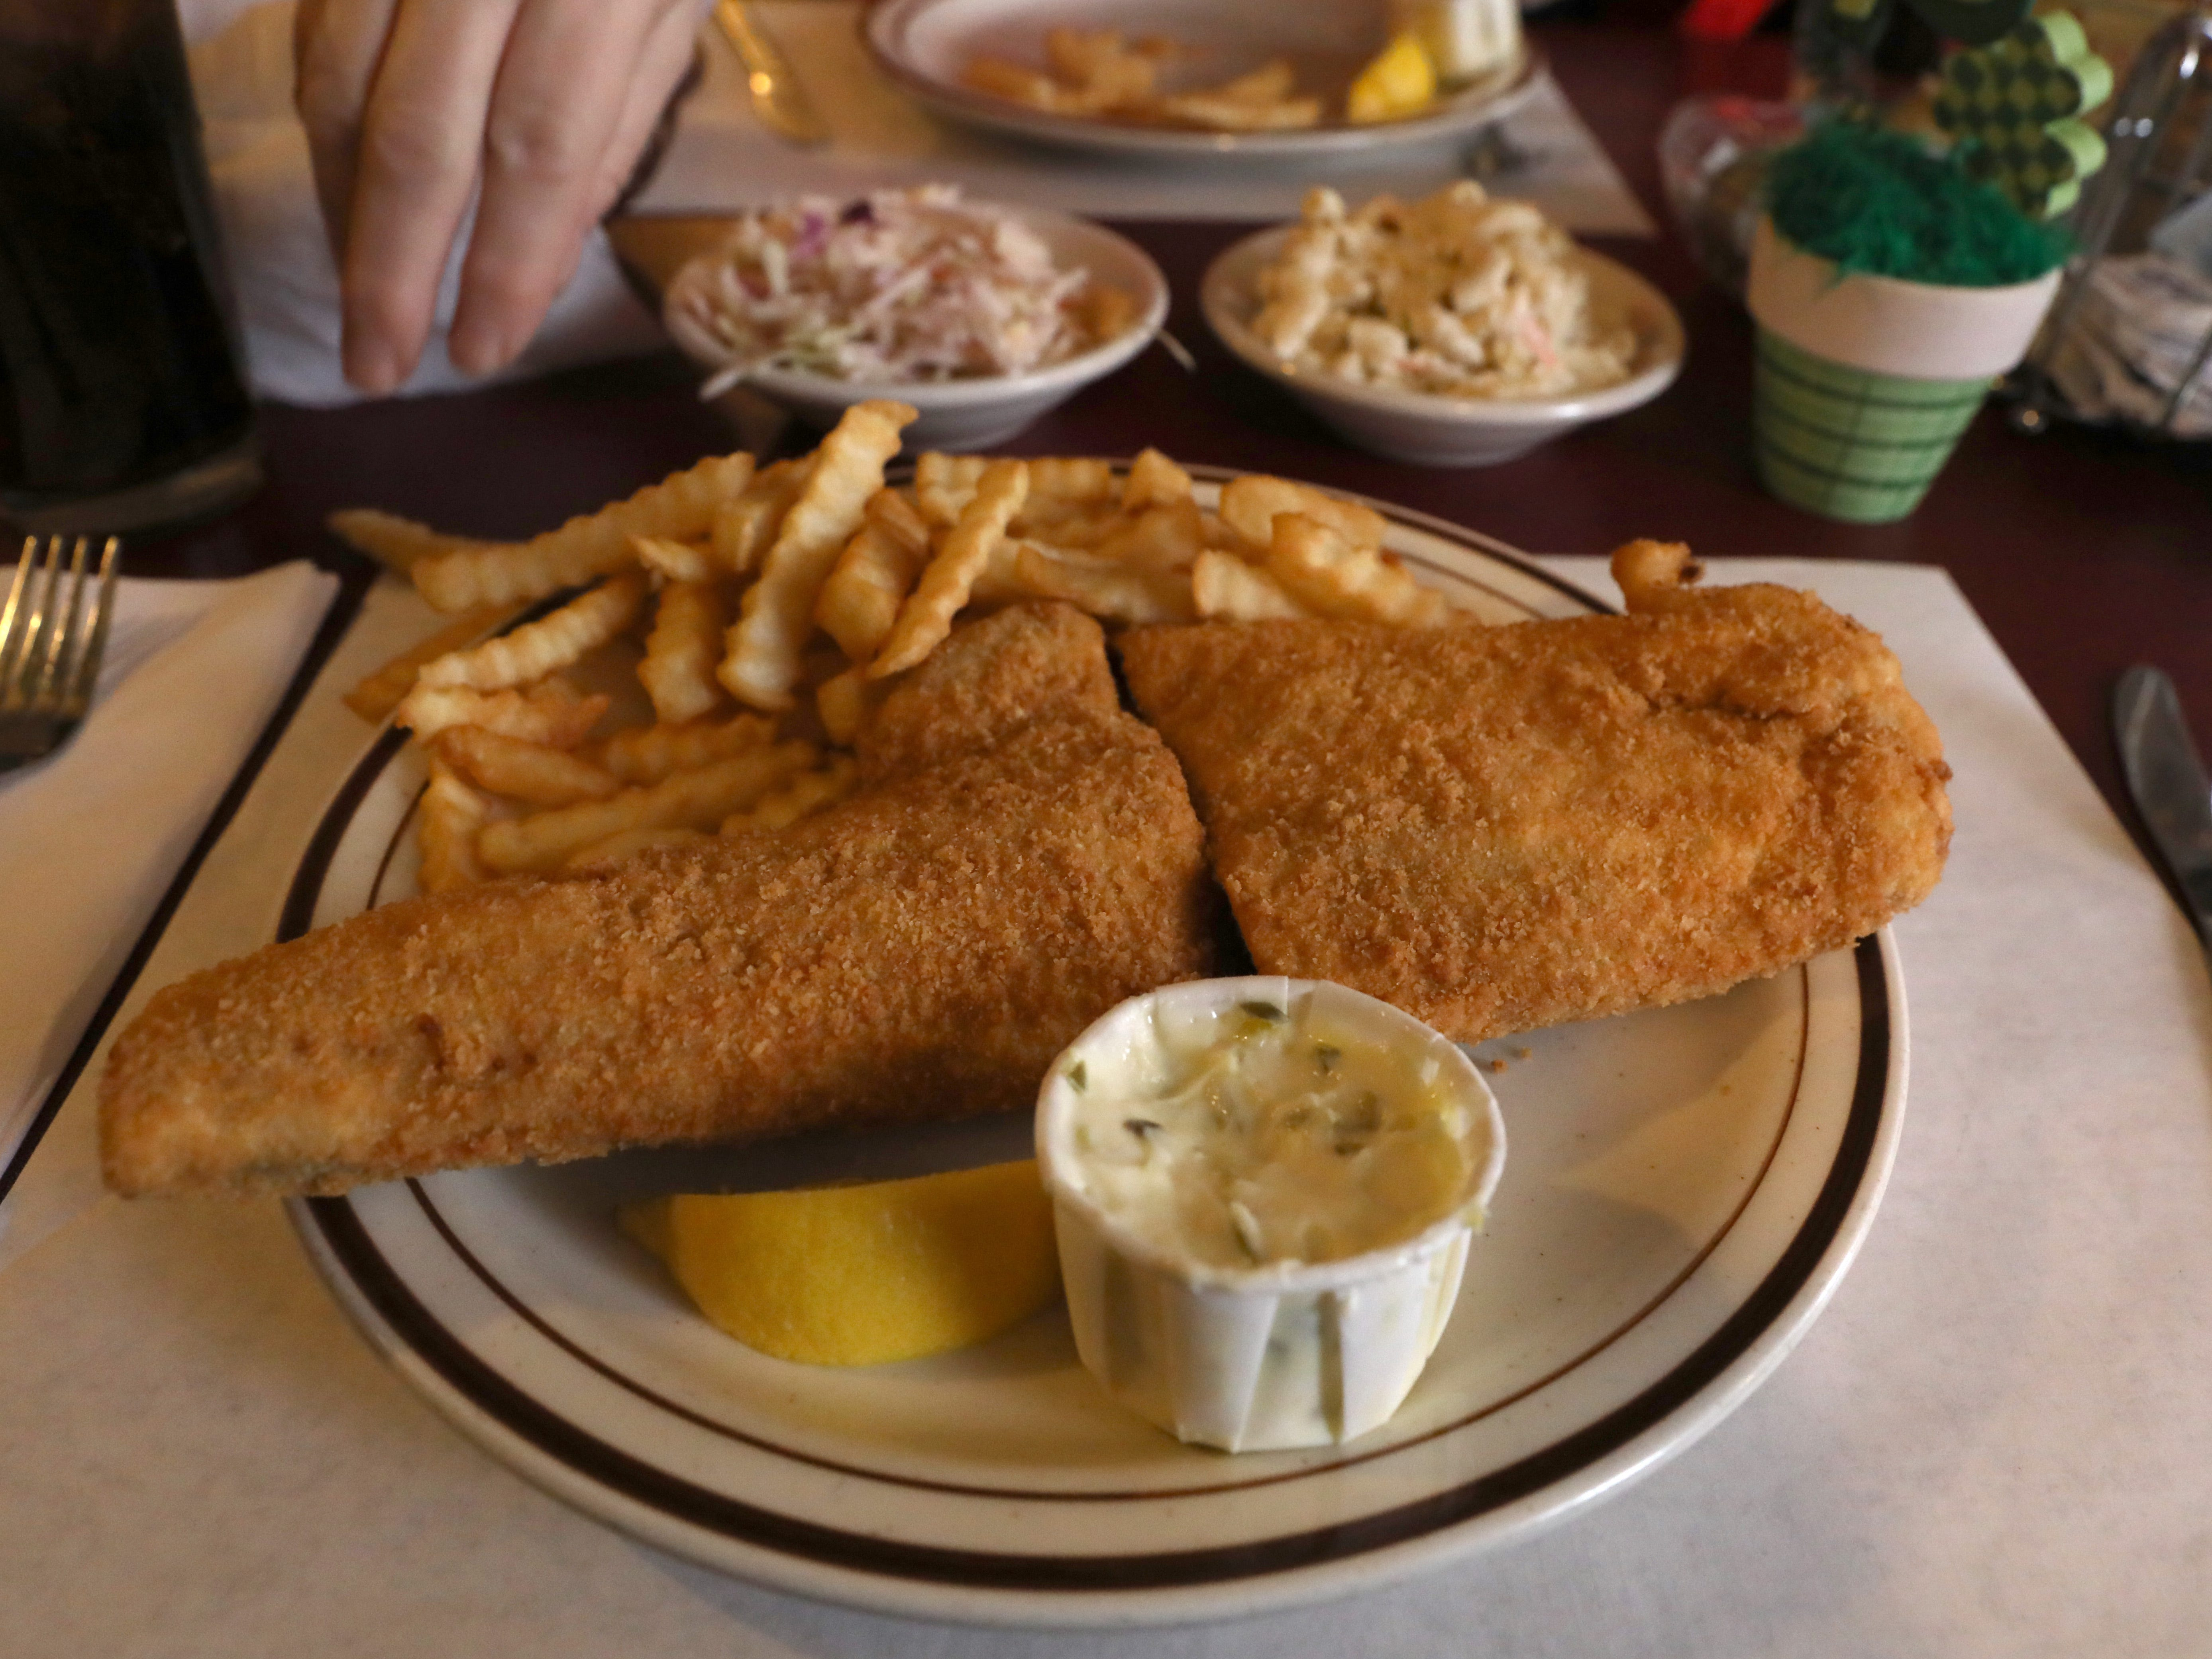 Fish fry at Stone's Countryside Tavern on Buffalo Rd. in Churchville Thursday, Feb. 21, 2019.